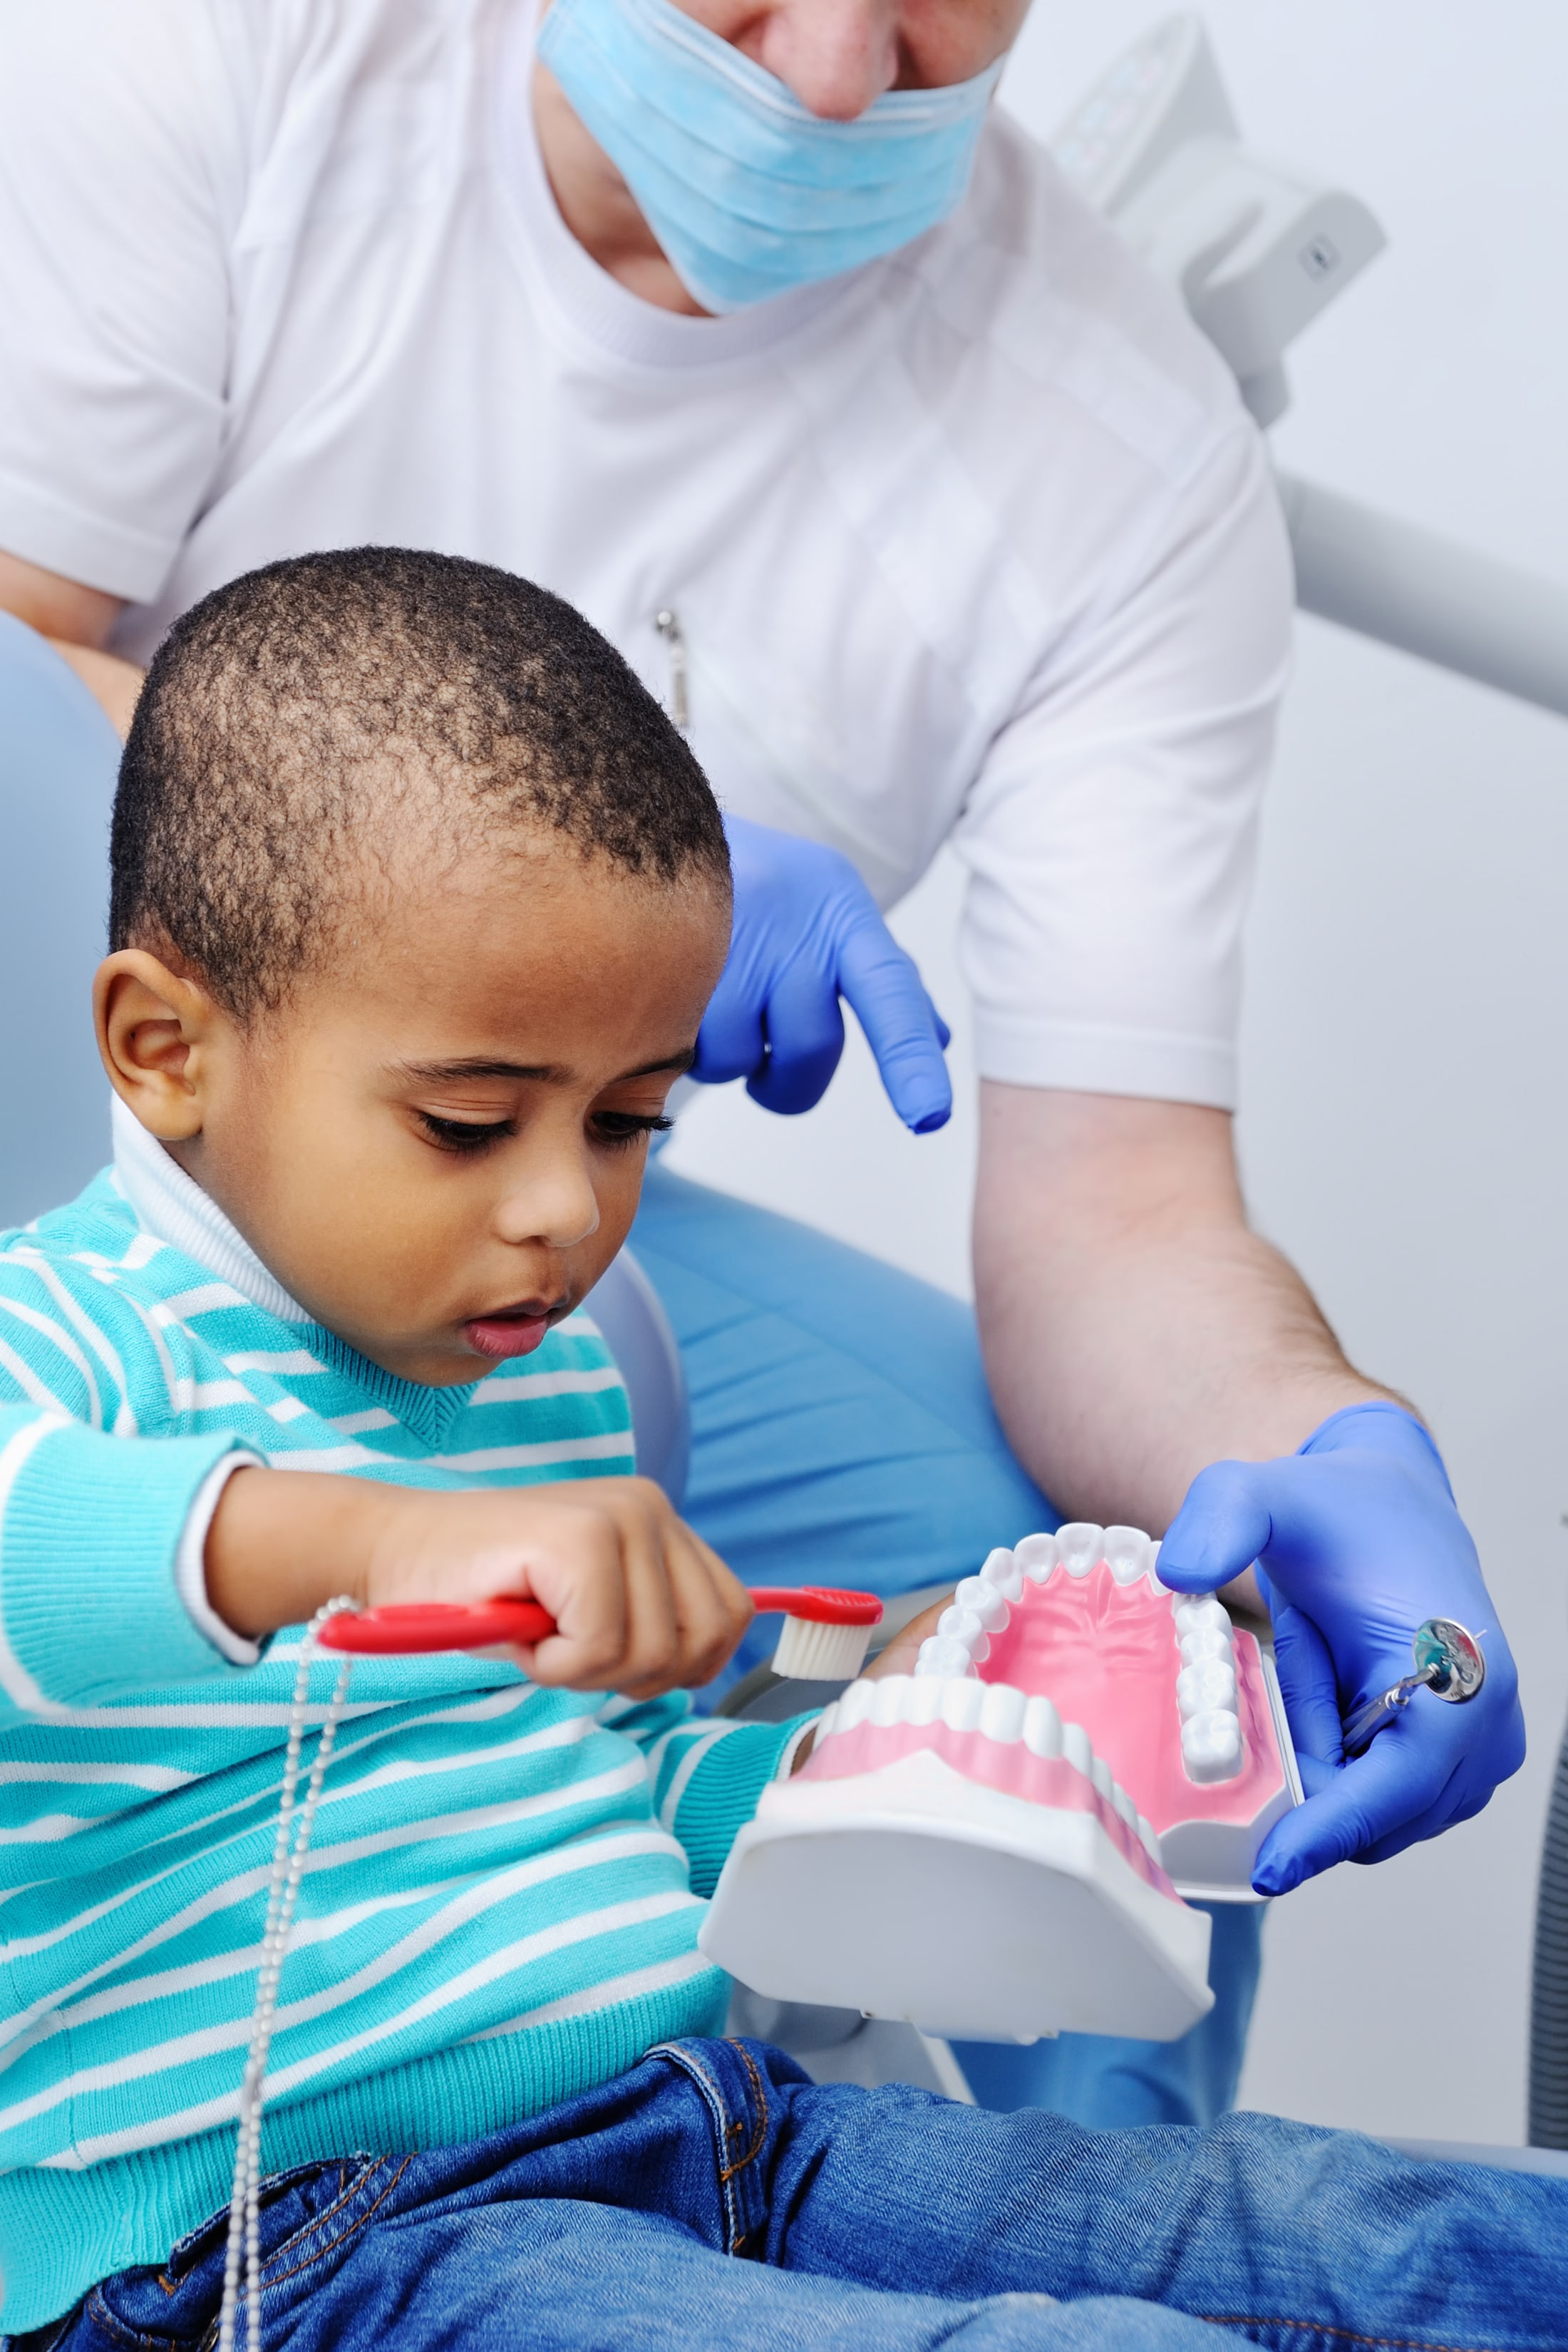 Pediatric dentist shows young child how to brush their teeth on an enlarged tooth model